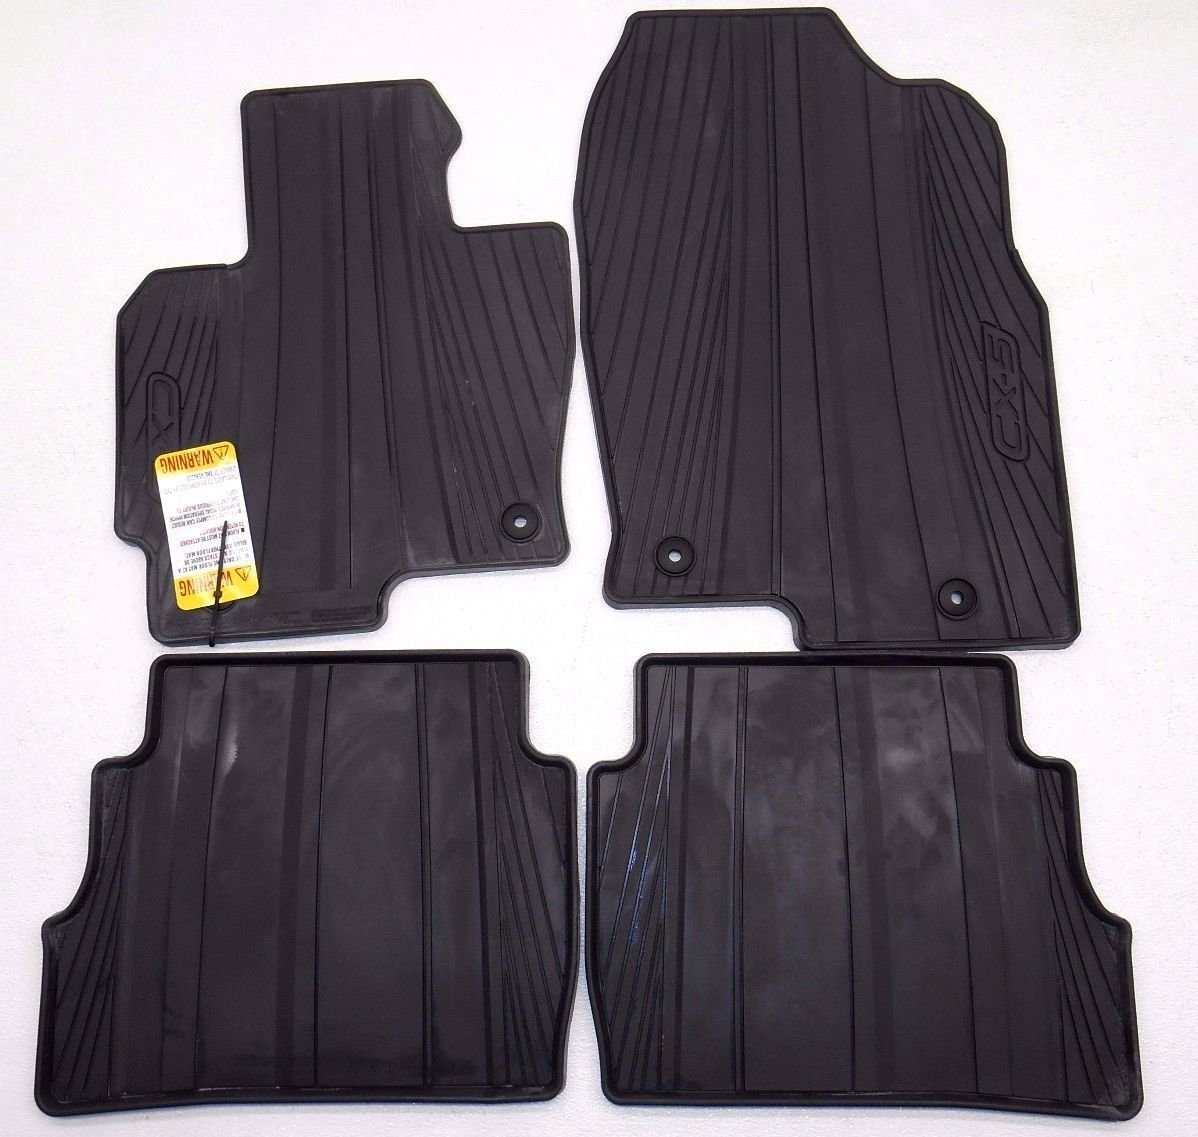 New OEM 2013-2015 Mazda CX-5 All Weather Floor Mats by Mazda (Image #1)